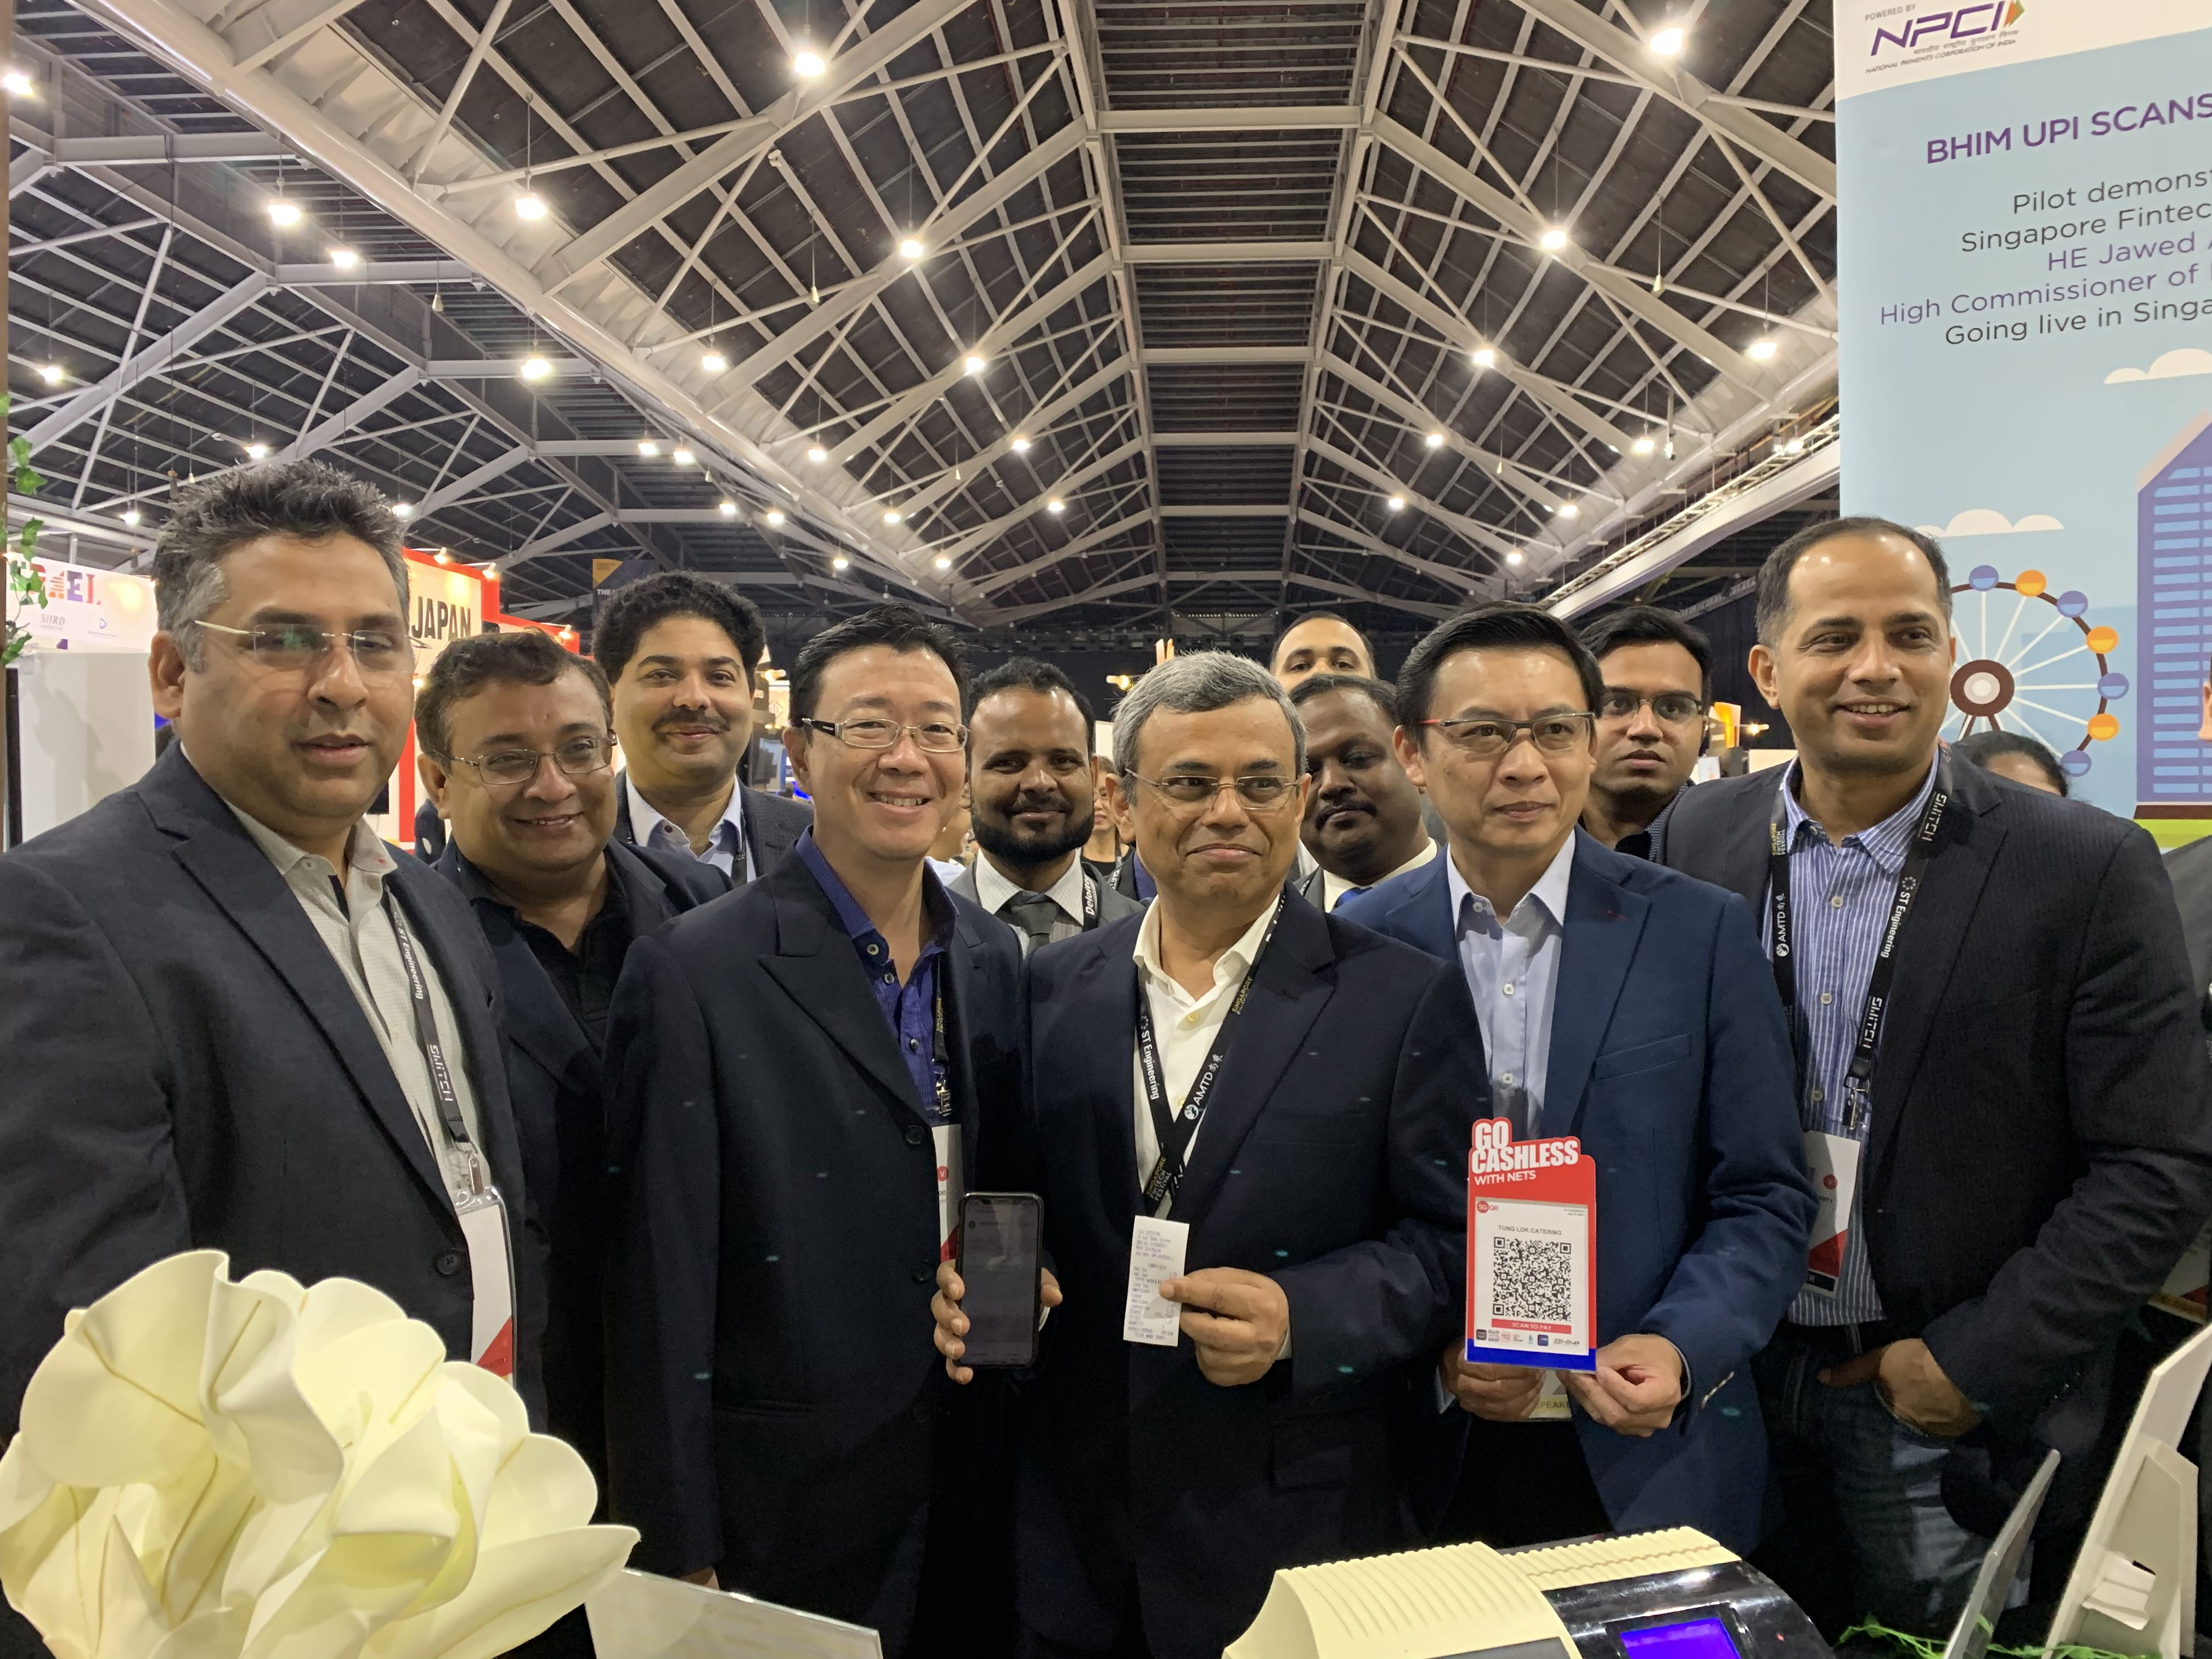 H.E. Jawed Ashraf, High Commissioner of India to Singapore holding the receipt and the phone used to pay for coffee using QR based payment system BHIM at Singapore Fintech Festival 2019. Photo courtesy: Connected to India